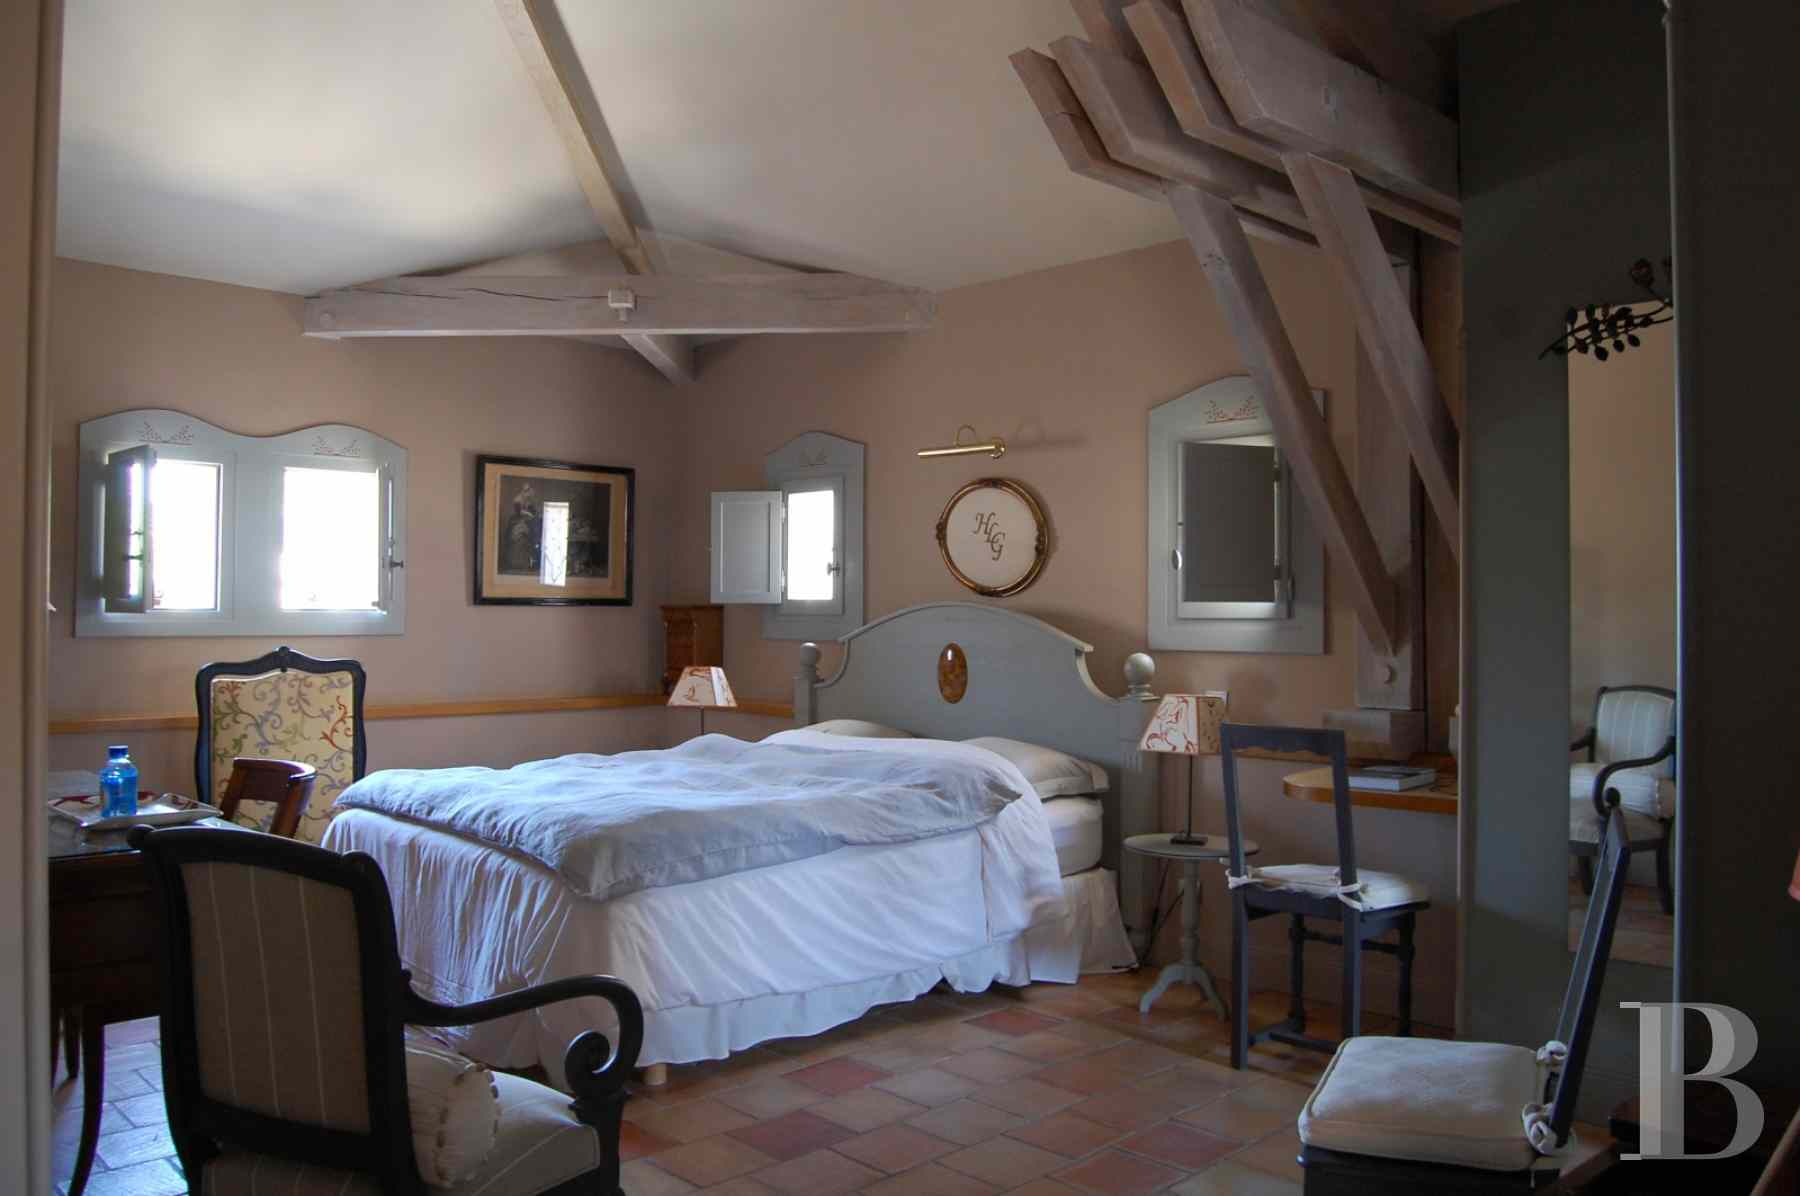 mansion houses for sale France midi pyrenees gers house - 15 zoom